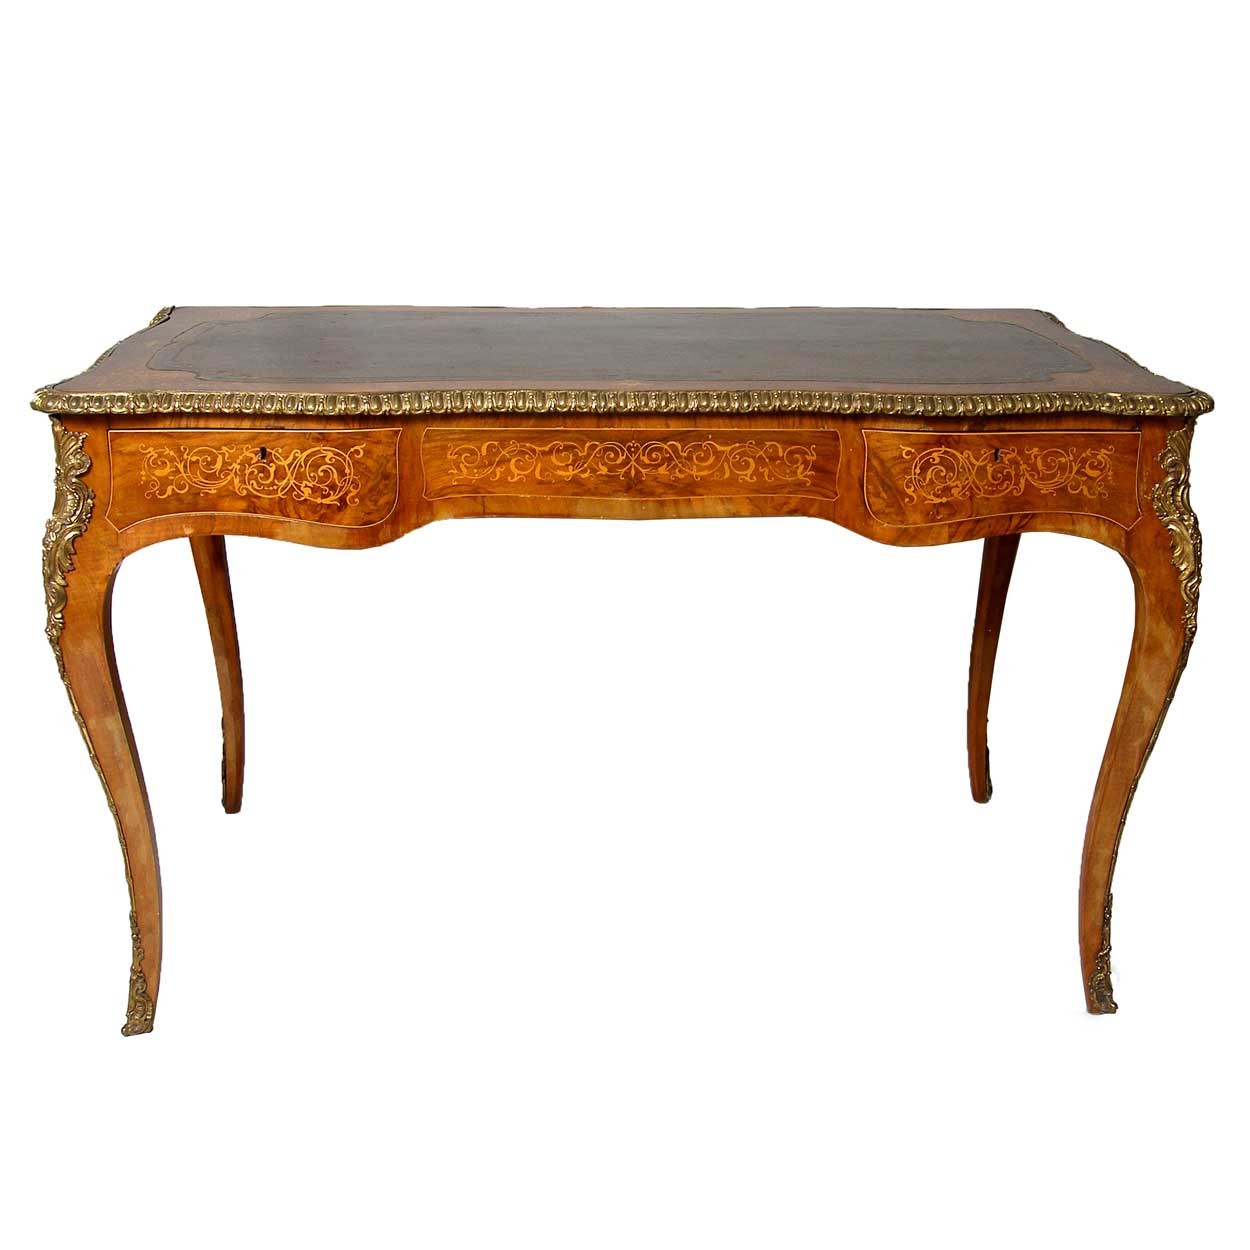 ref t2839 french louis xv style walnut marquetry leather top bureau plat for sale antiques. Black Bedroom Furniture Sets. Home Design Ideas